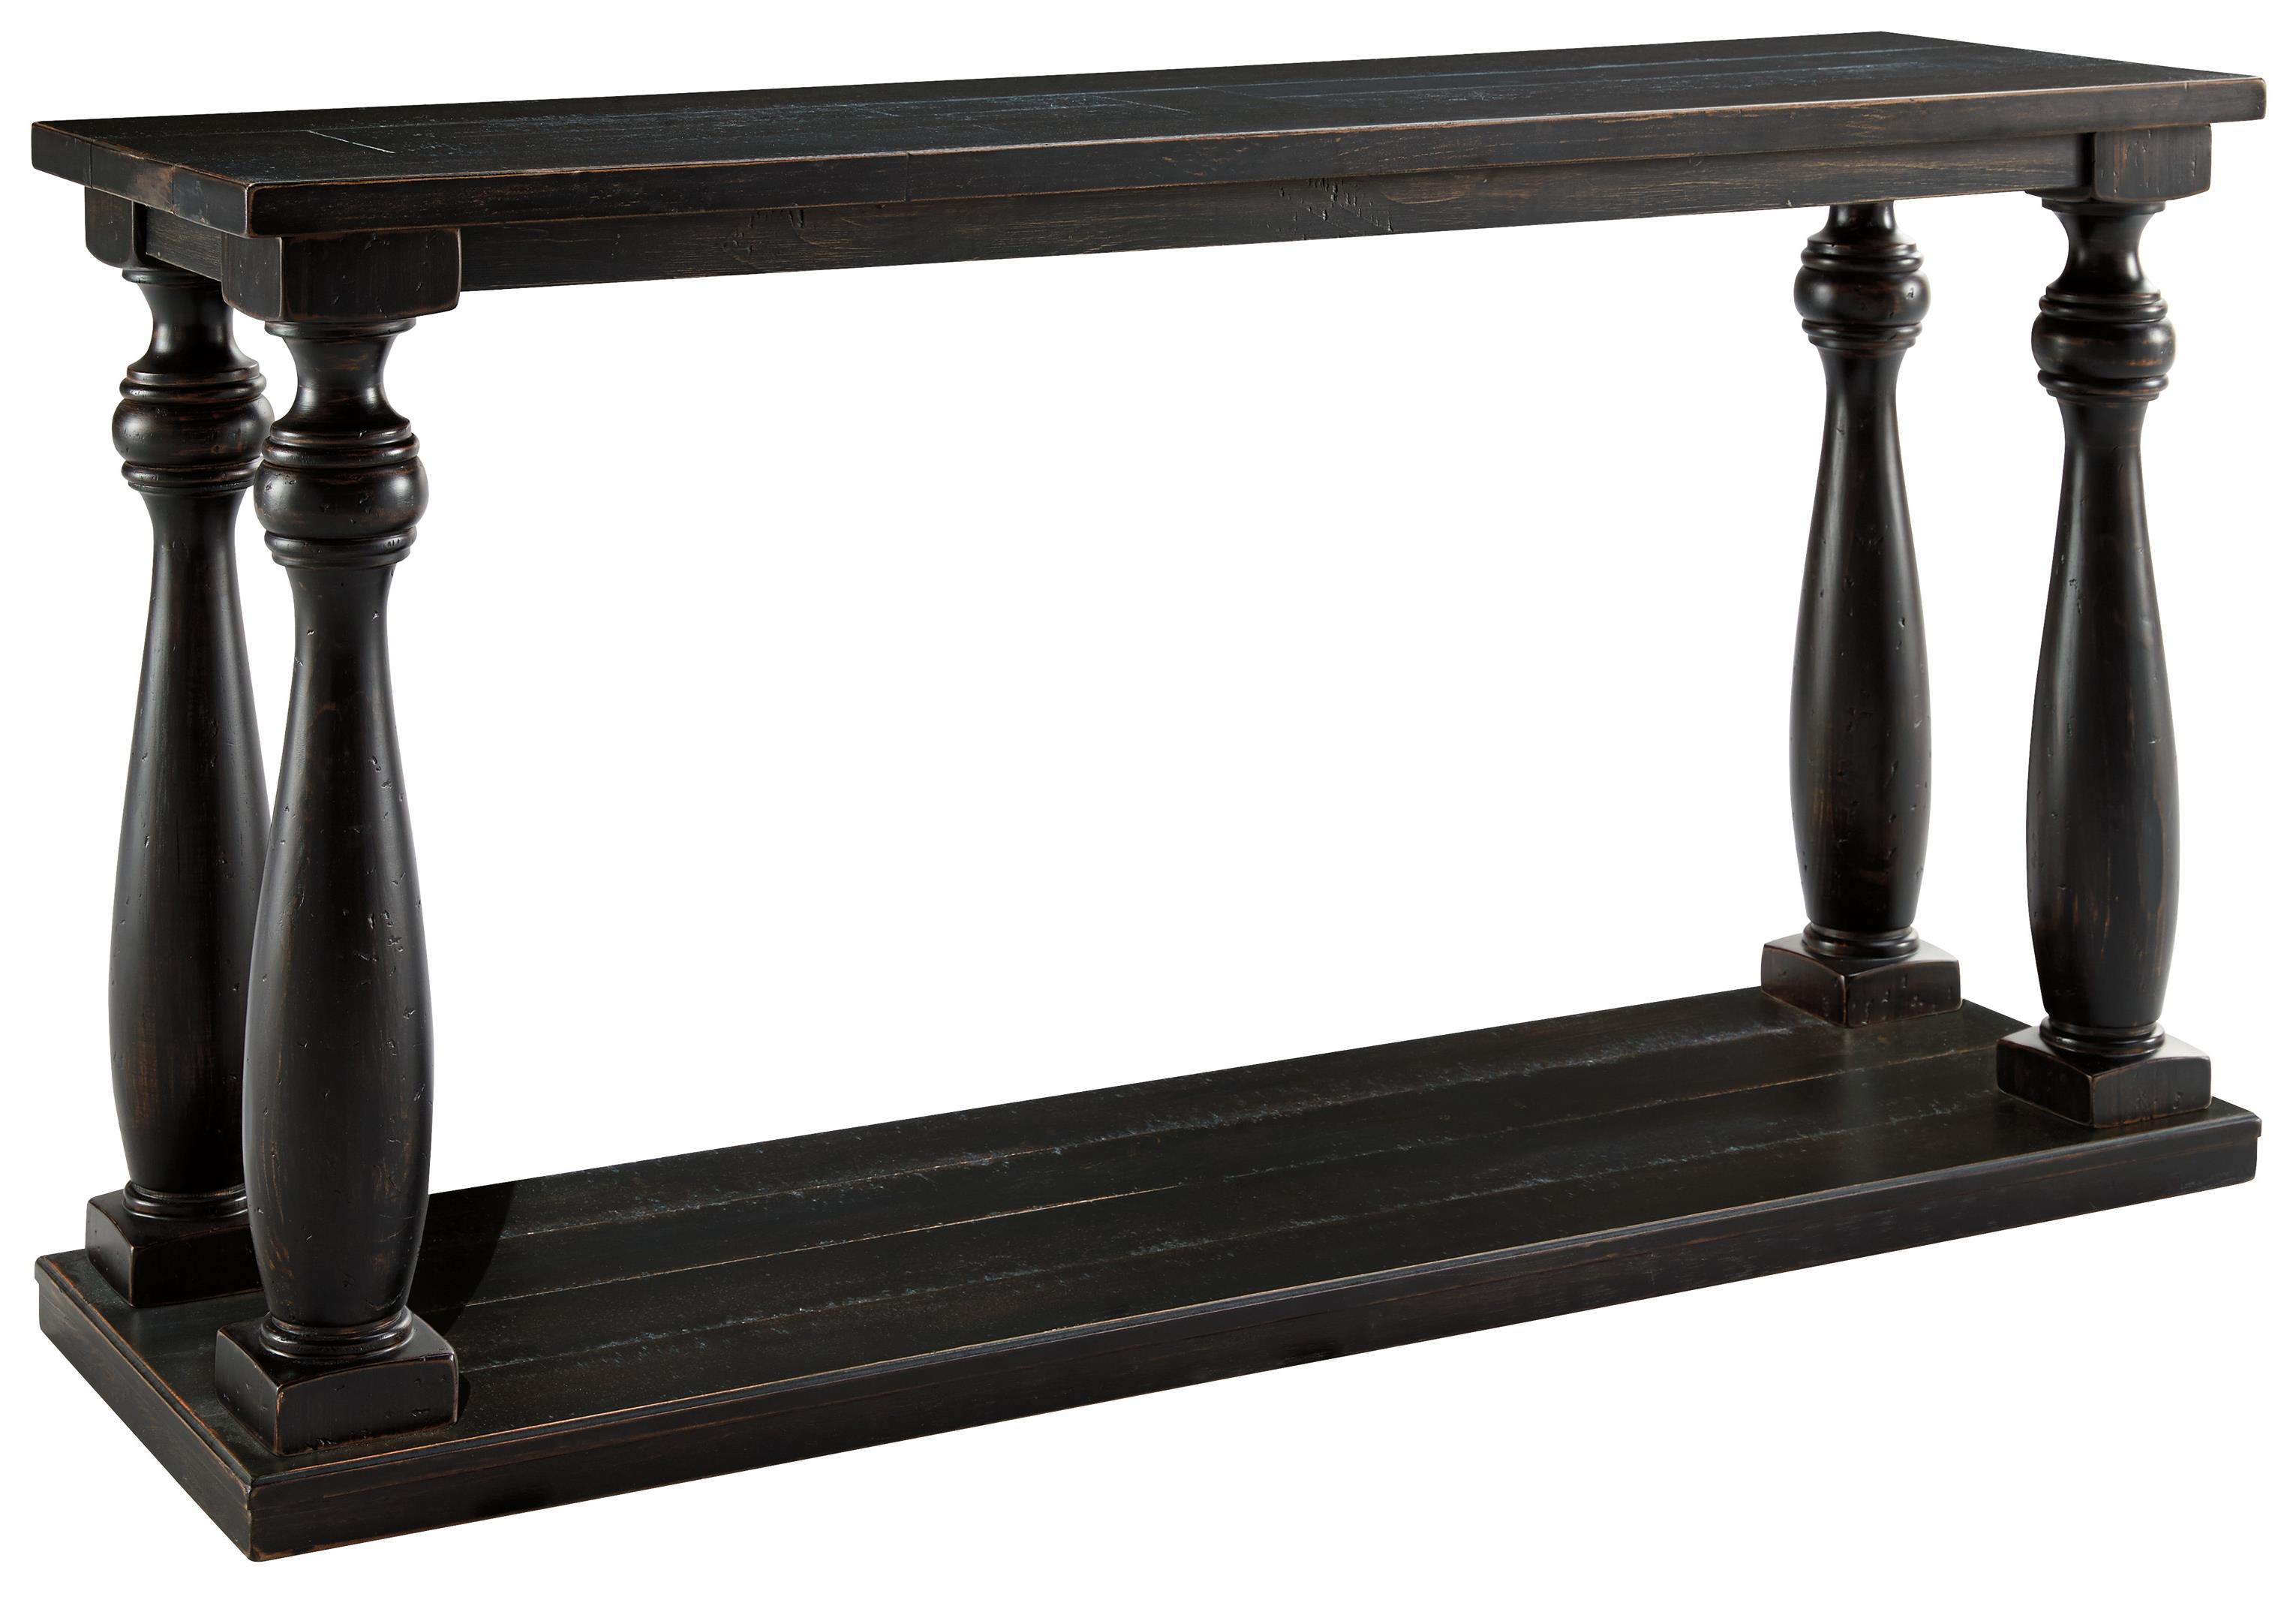 Signature Design by Ashley Mallacar Sofa Table - Item Number: T880-4